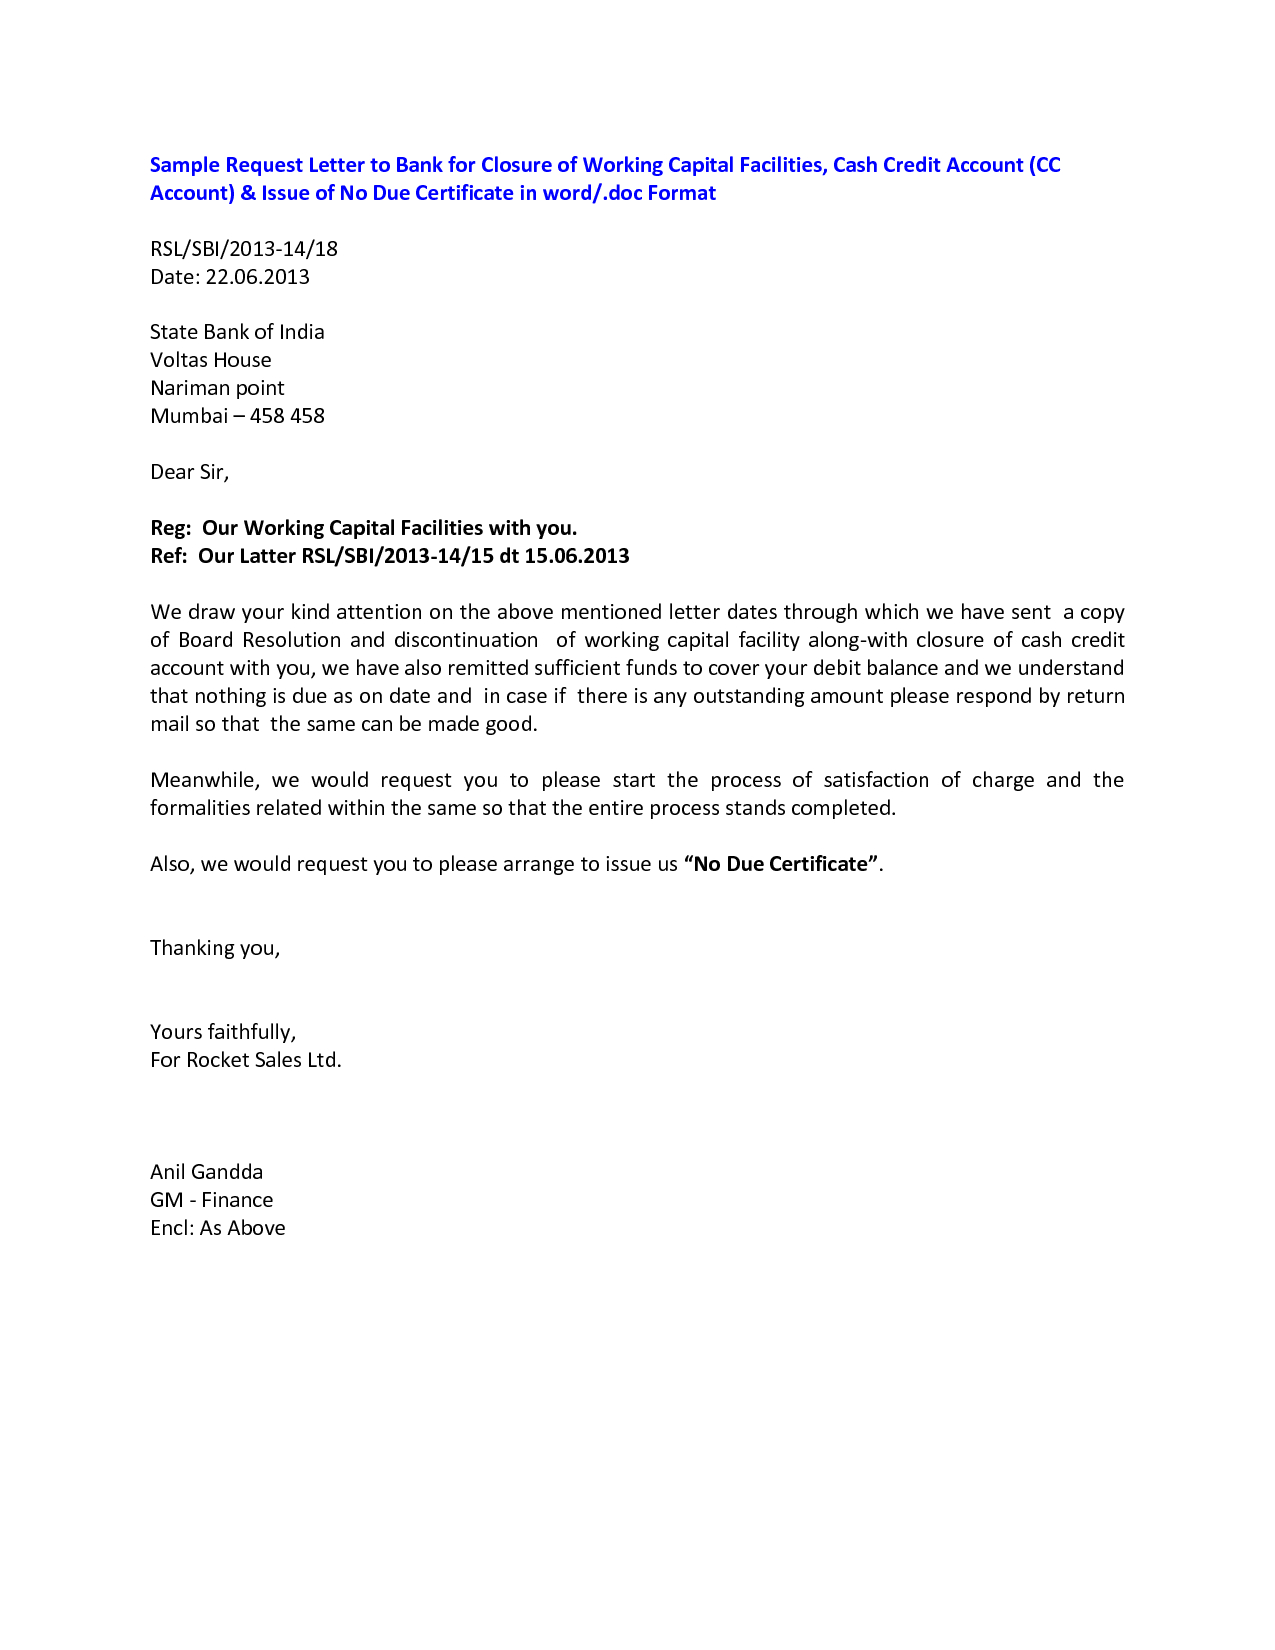 Corporate Bank Account Closing Letterclosing A Letter Formal Letter For Account Closure Letter Template